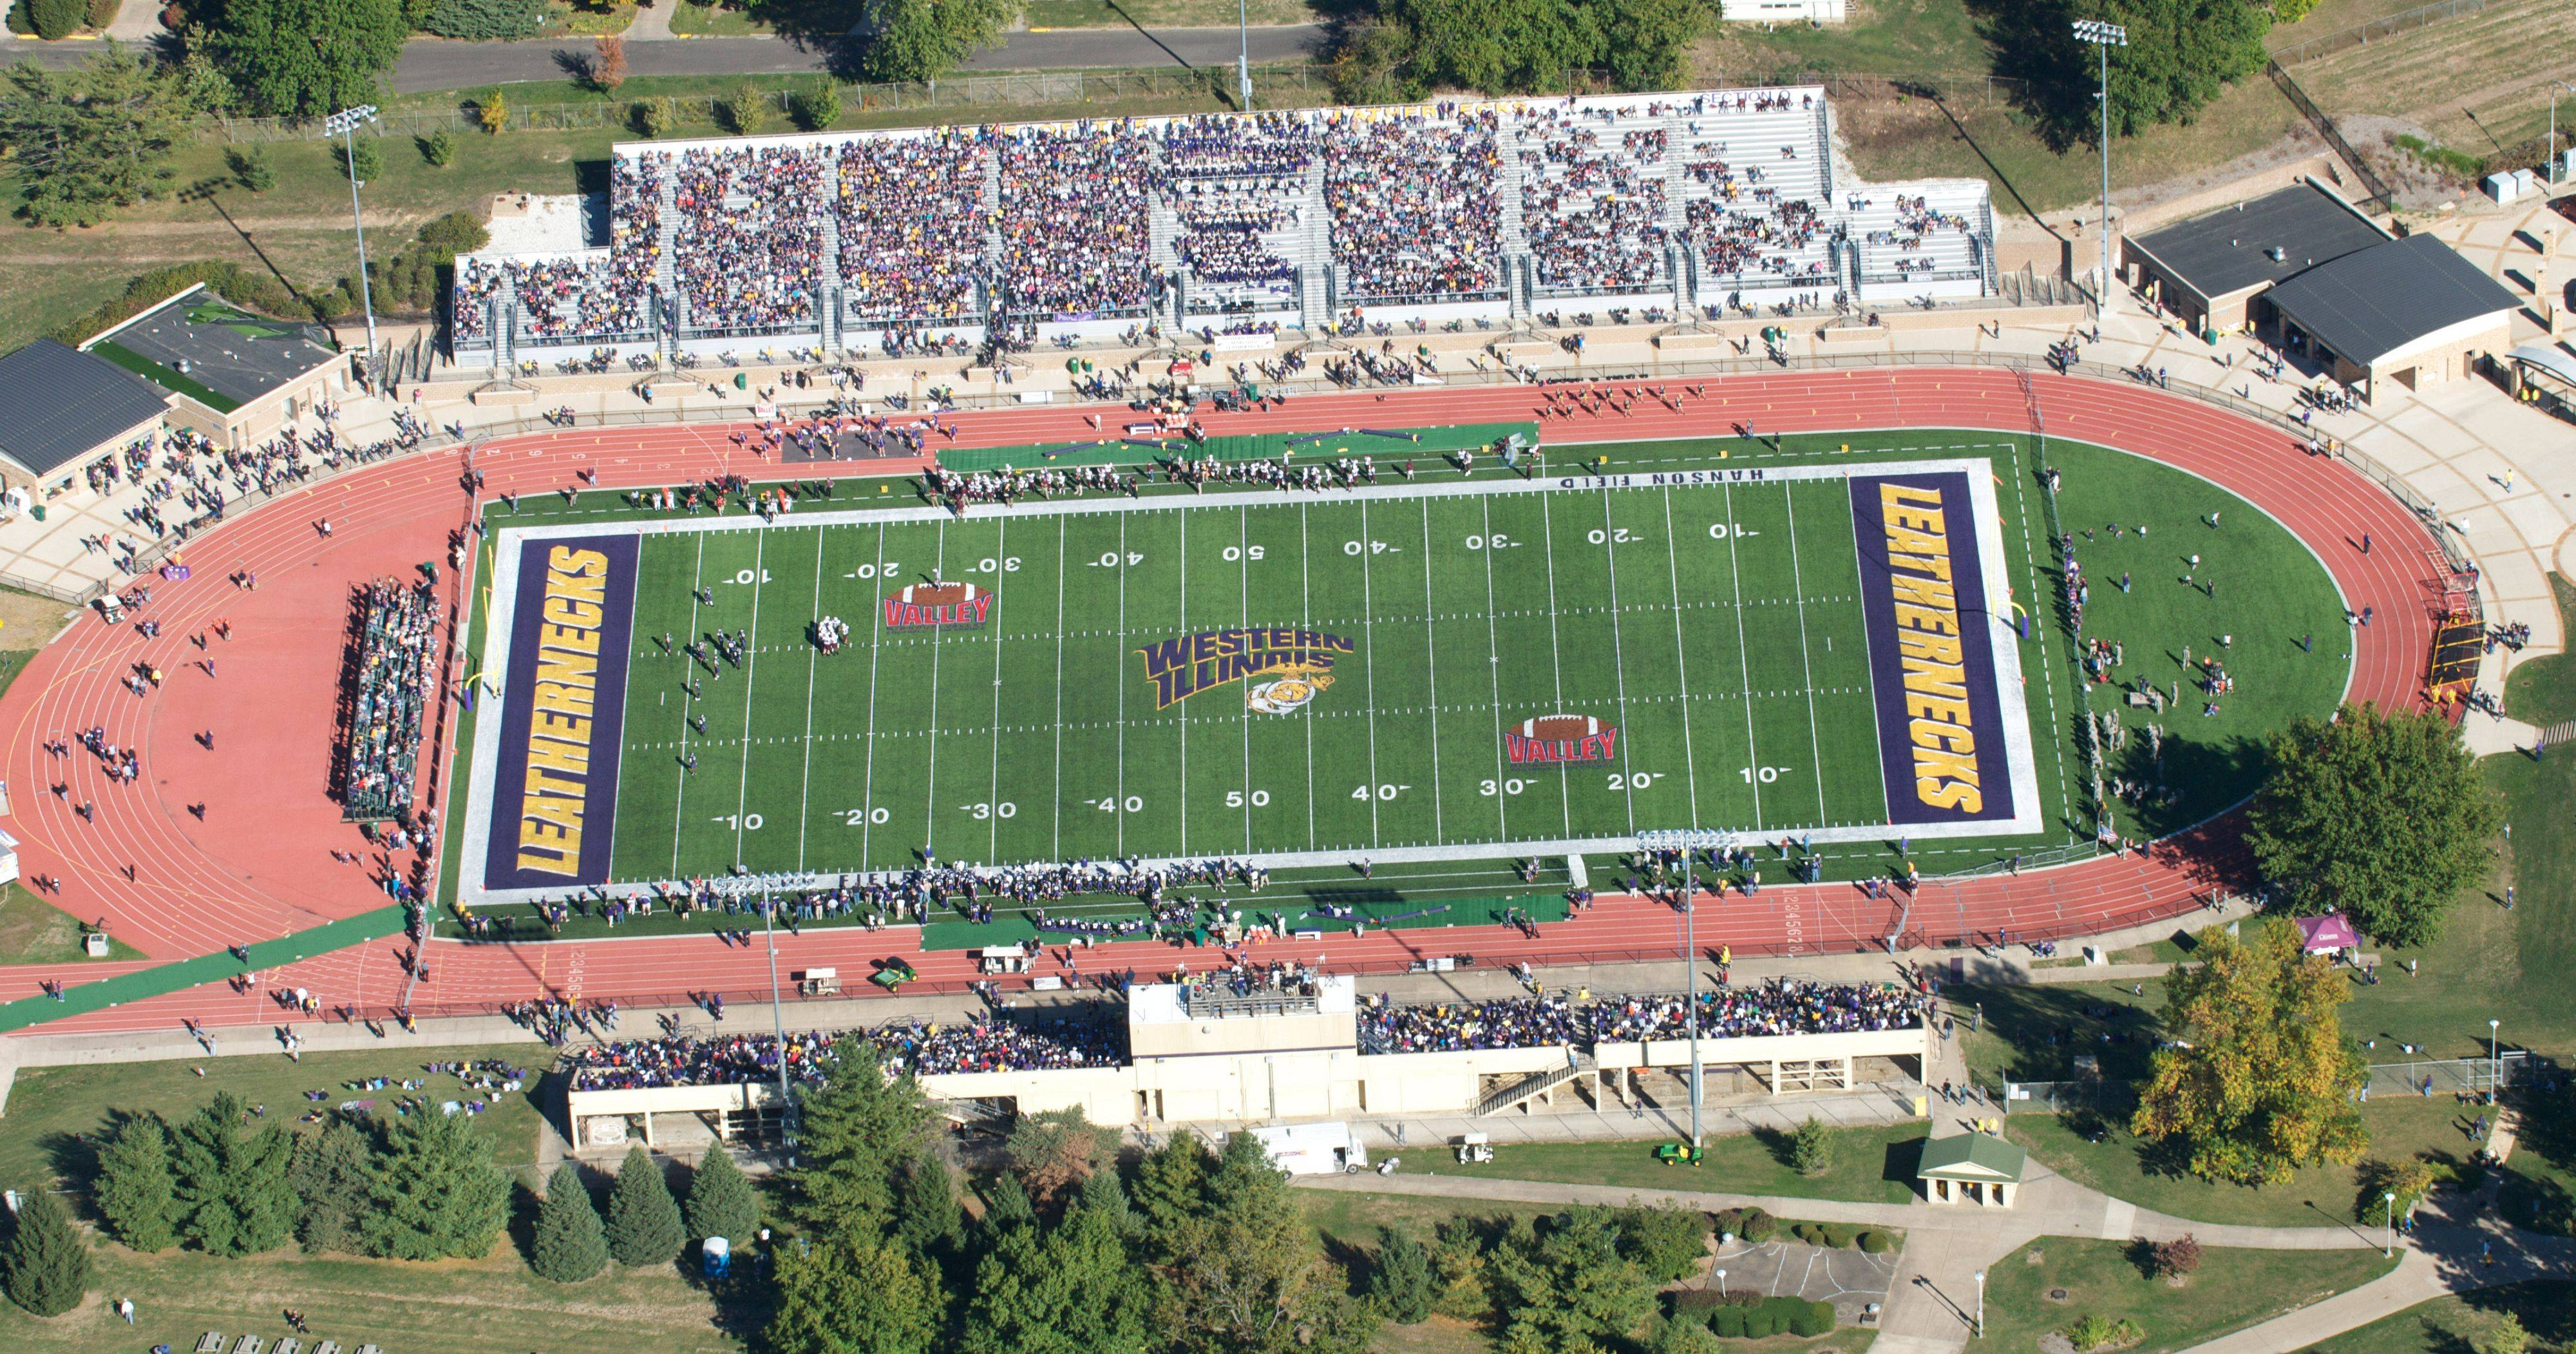 Mundelein High School officials visited Hanson Field at Western Illinois University in Macomb in September. The attorney general's office has said the gathering violated the Open Meetings Act because of the distance from Mundelein.